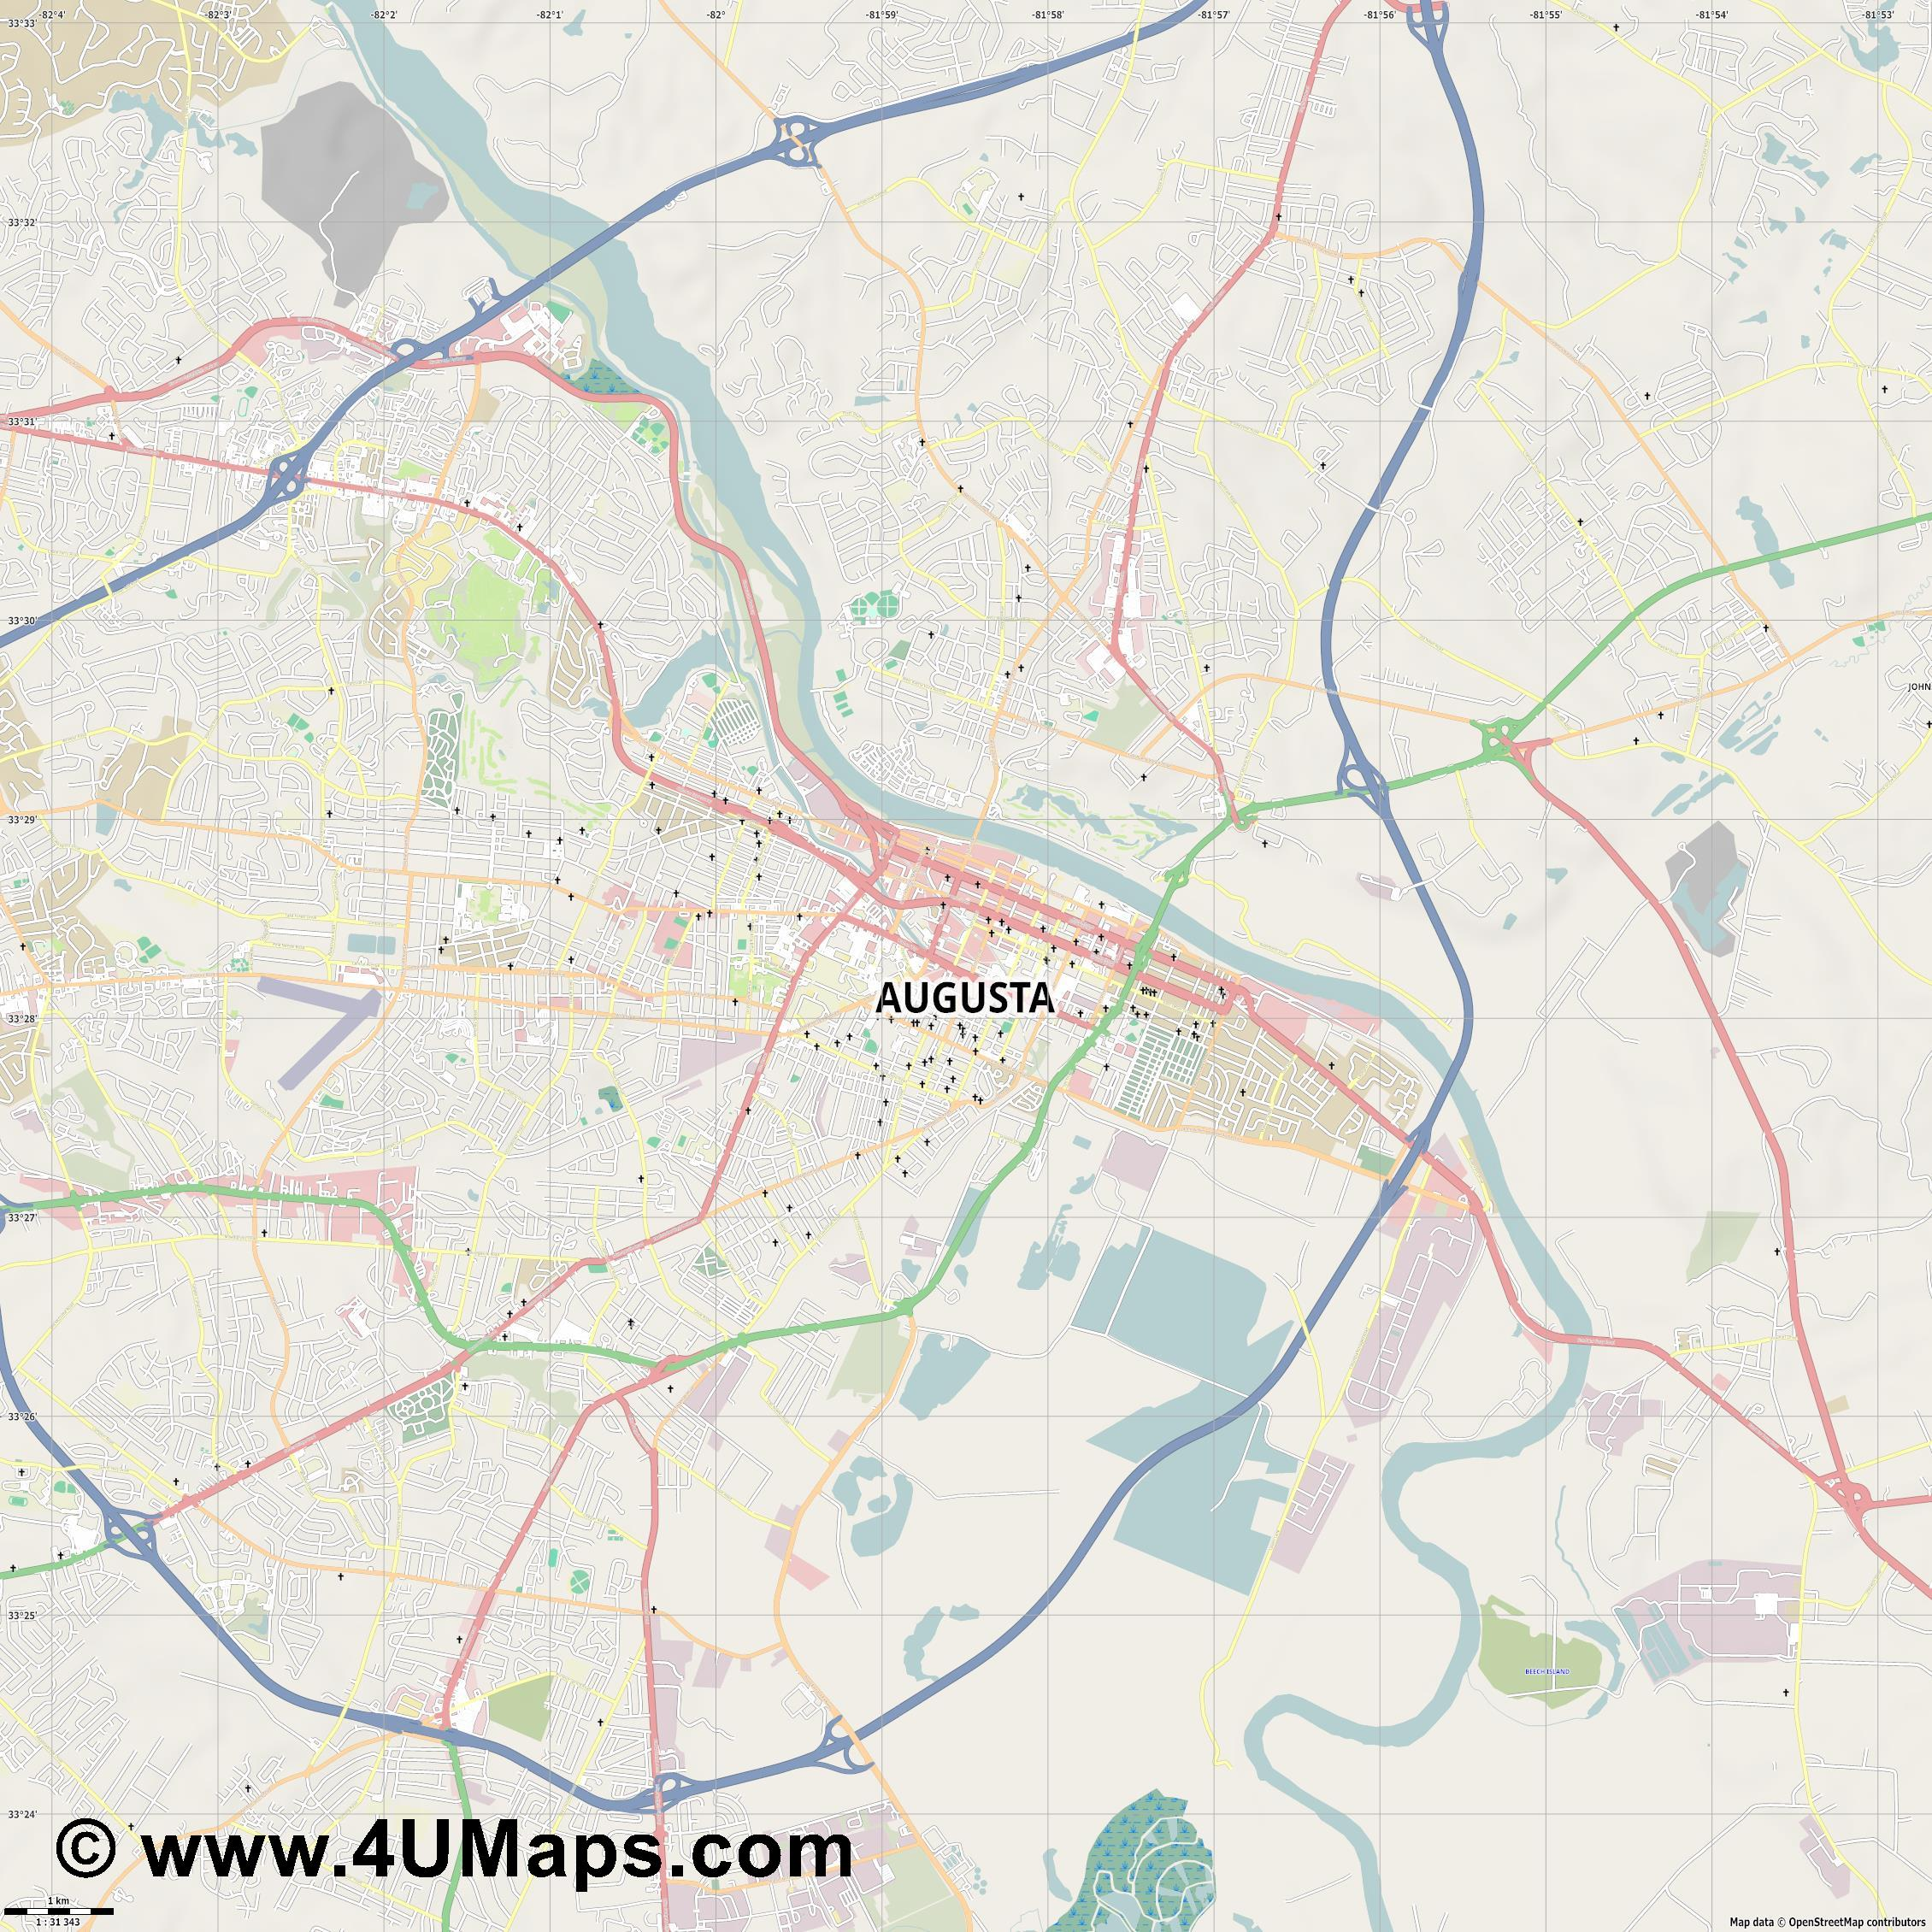 Augusta  jpg high detail, large area preview vector city map